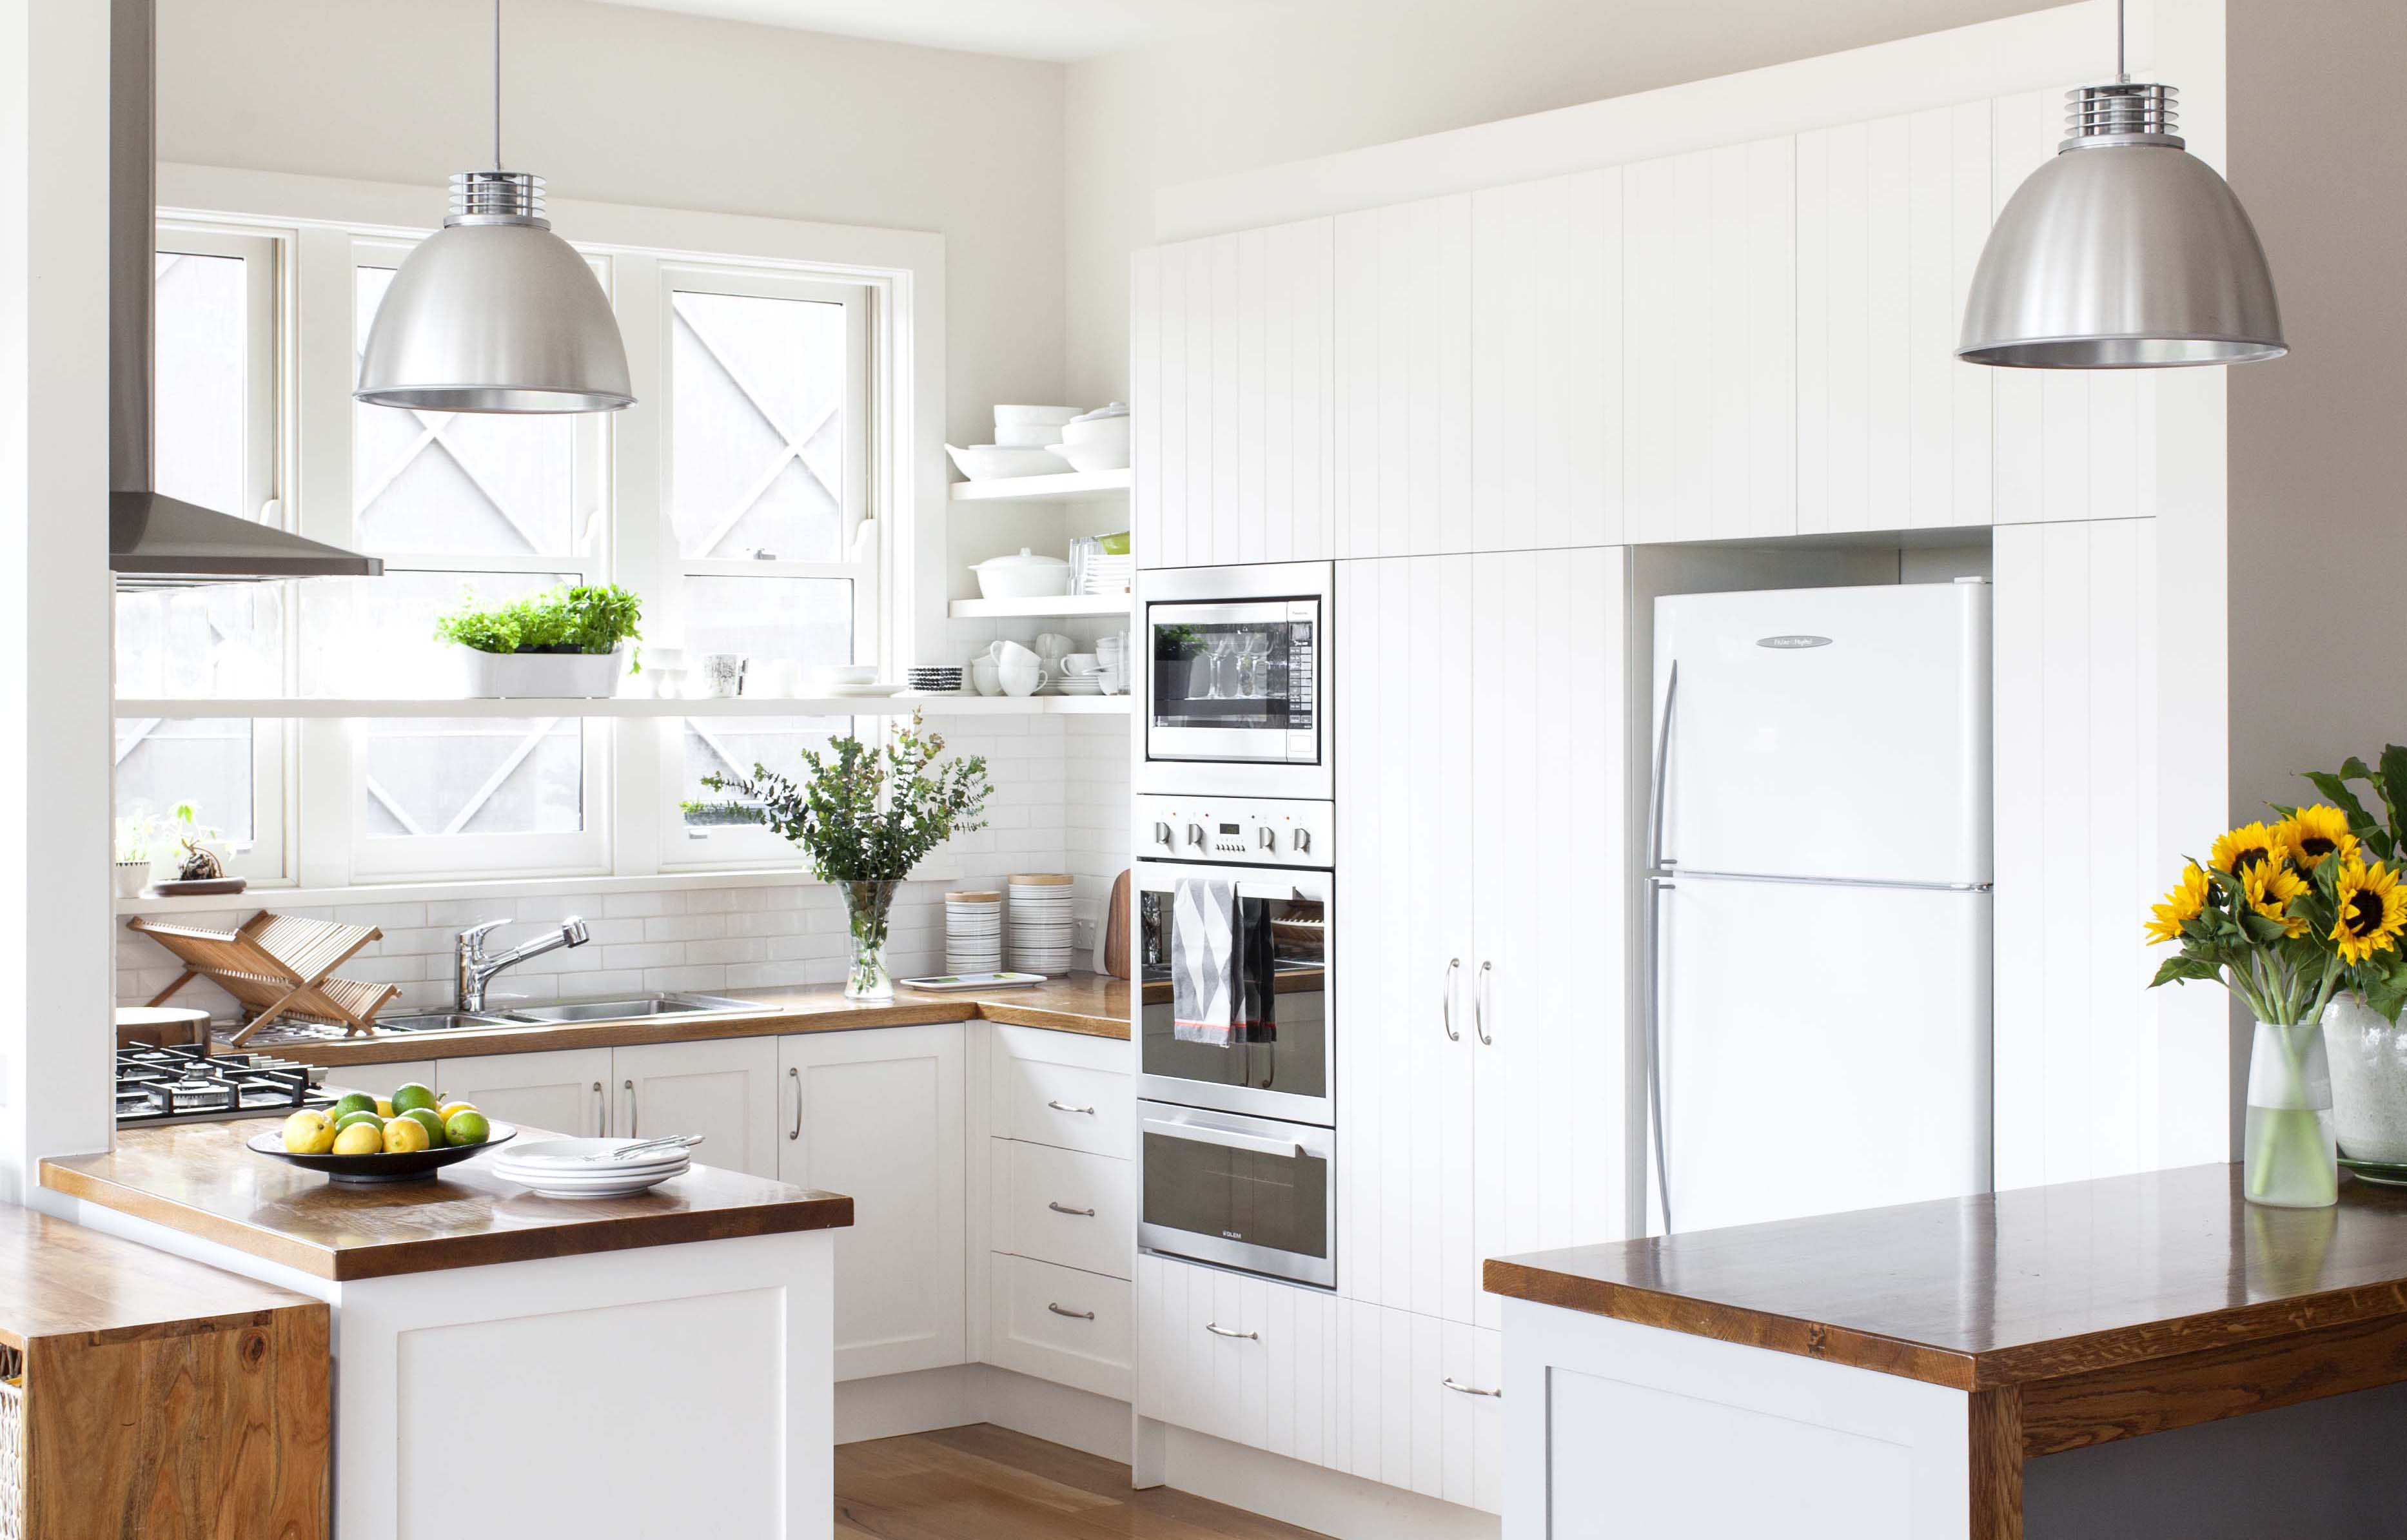 A Compact Practical And Stylish Kitchen Homes Bathroom